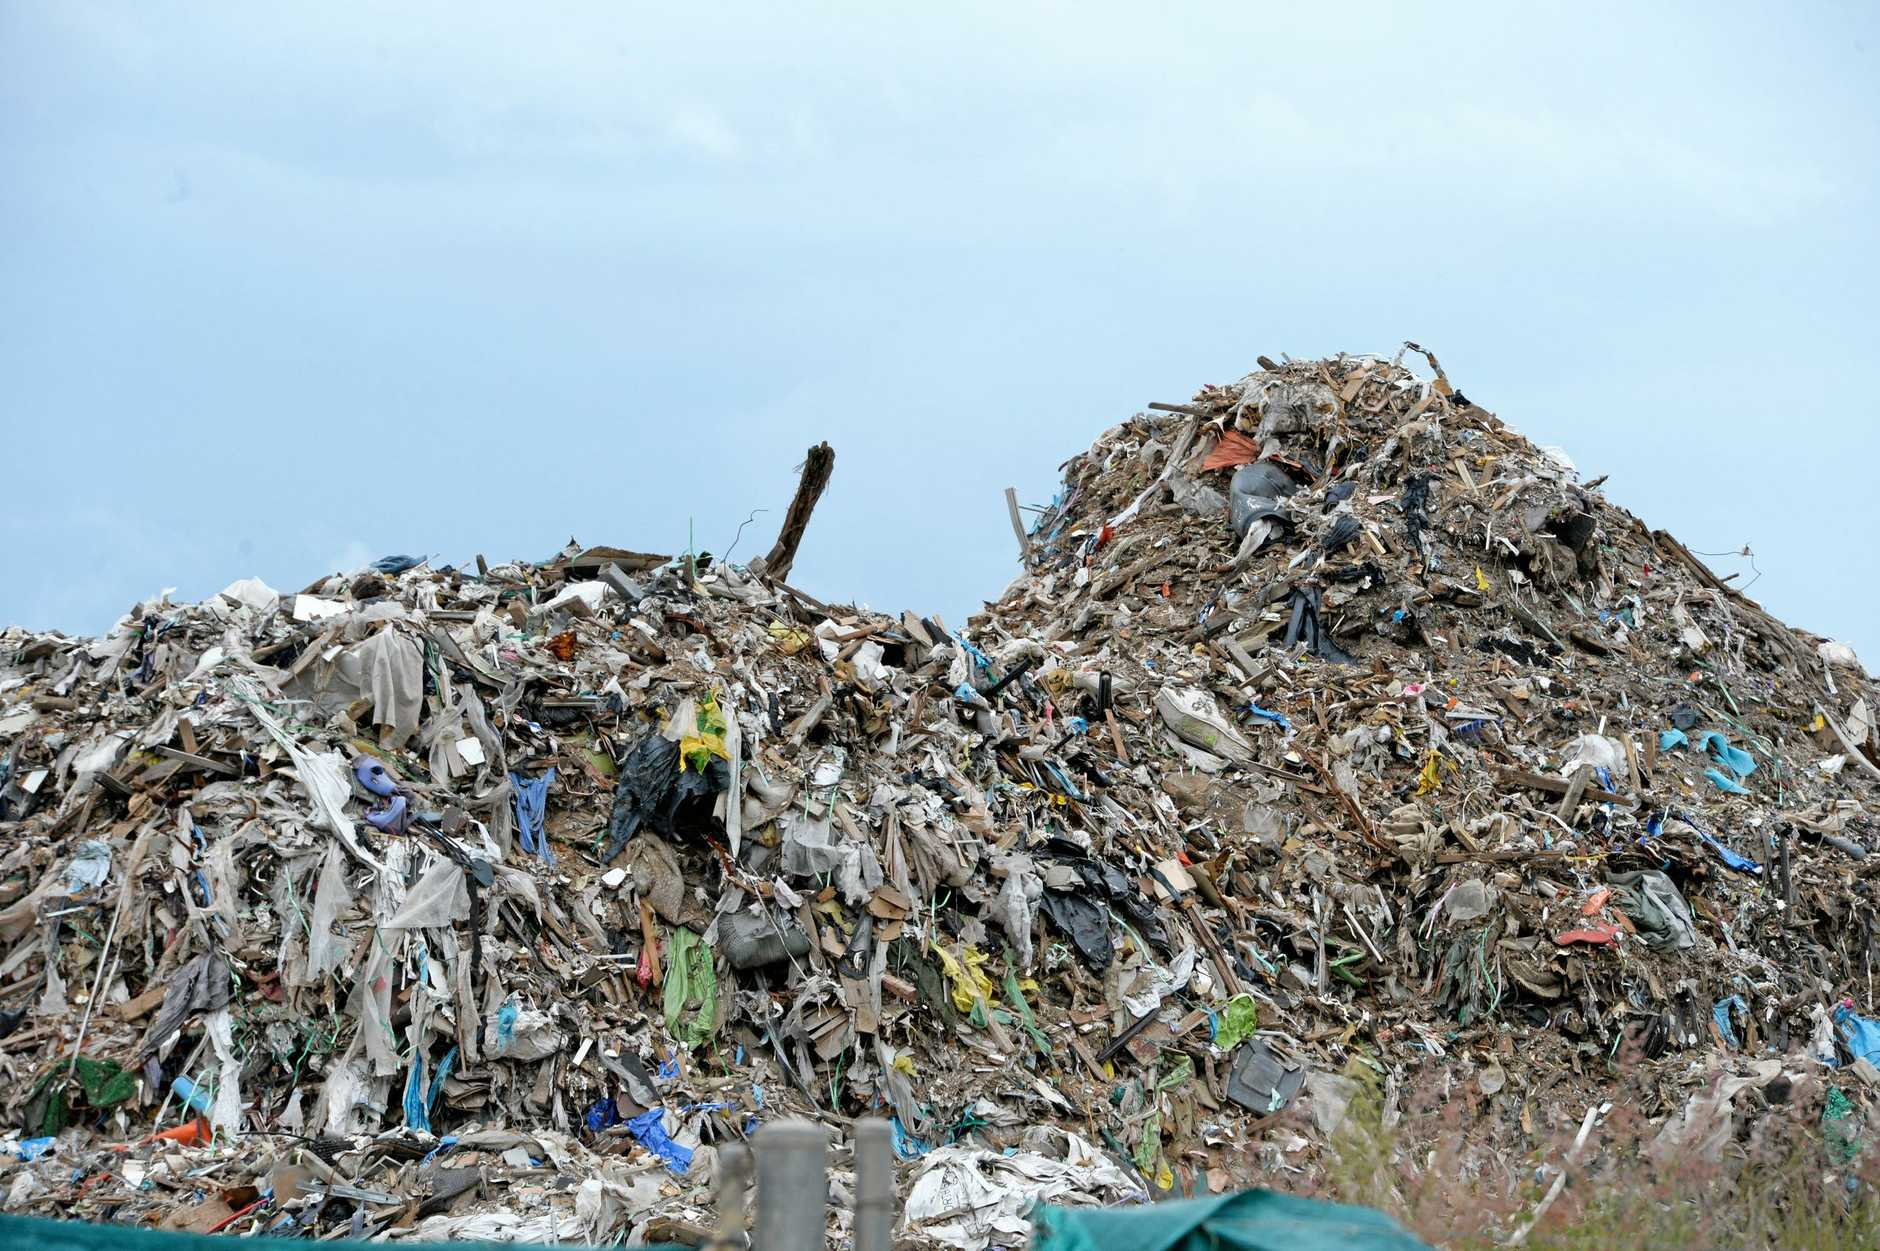 Rubbish pile at BMI site in the Swanbank Recycle Park.